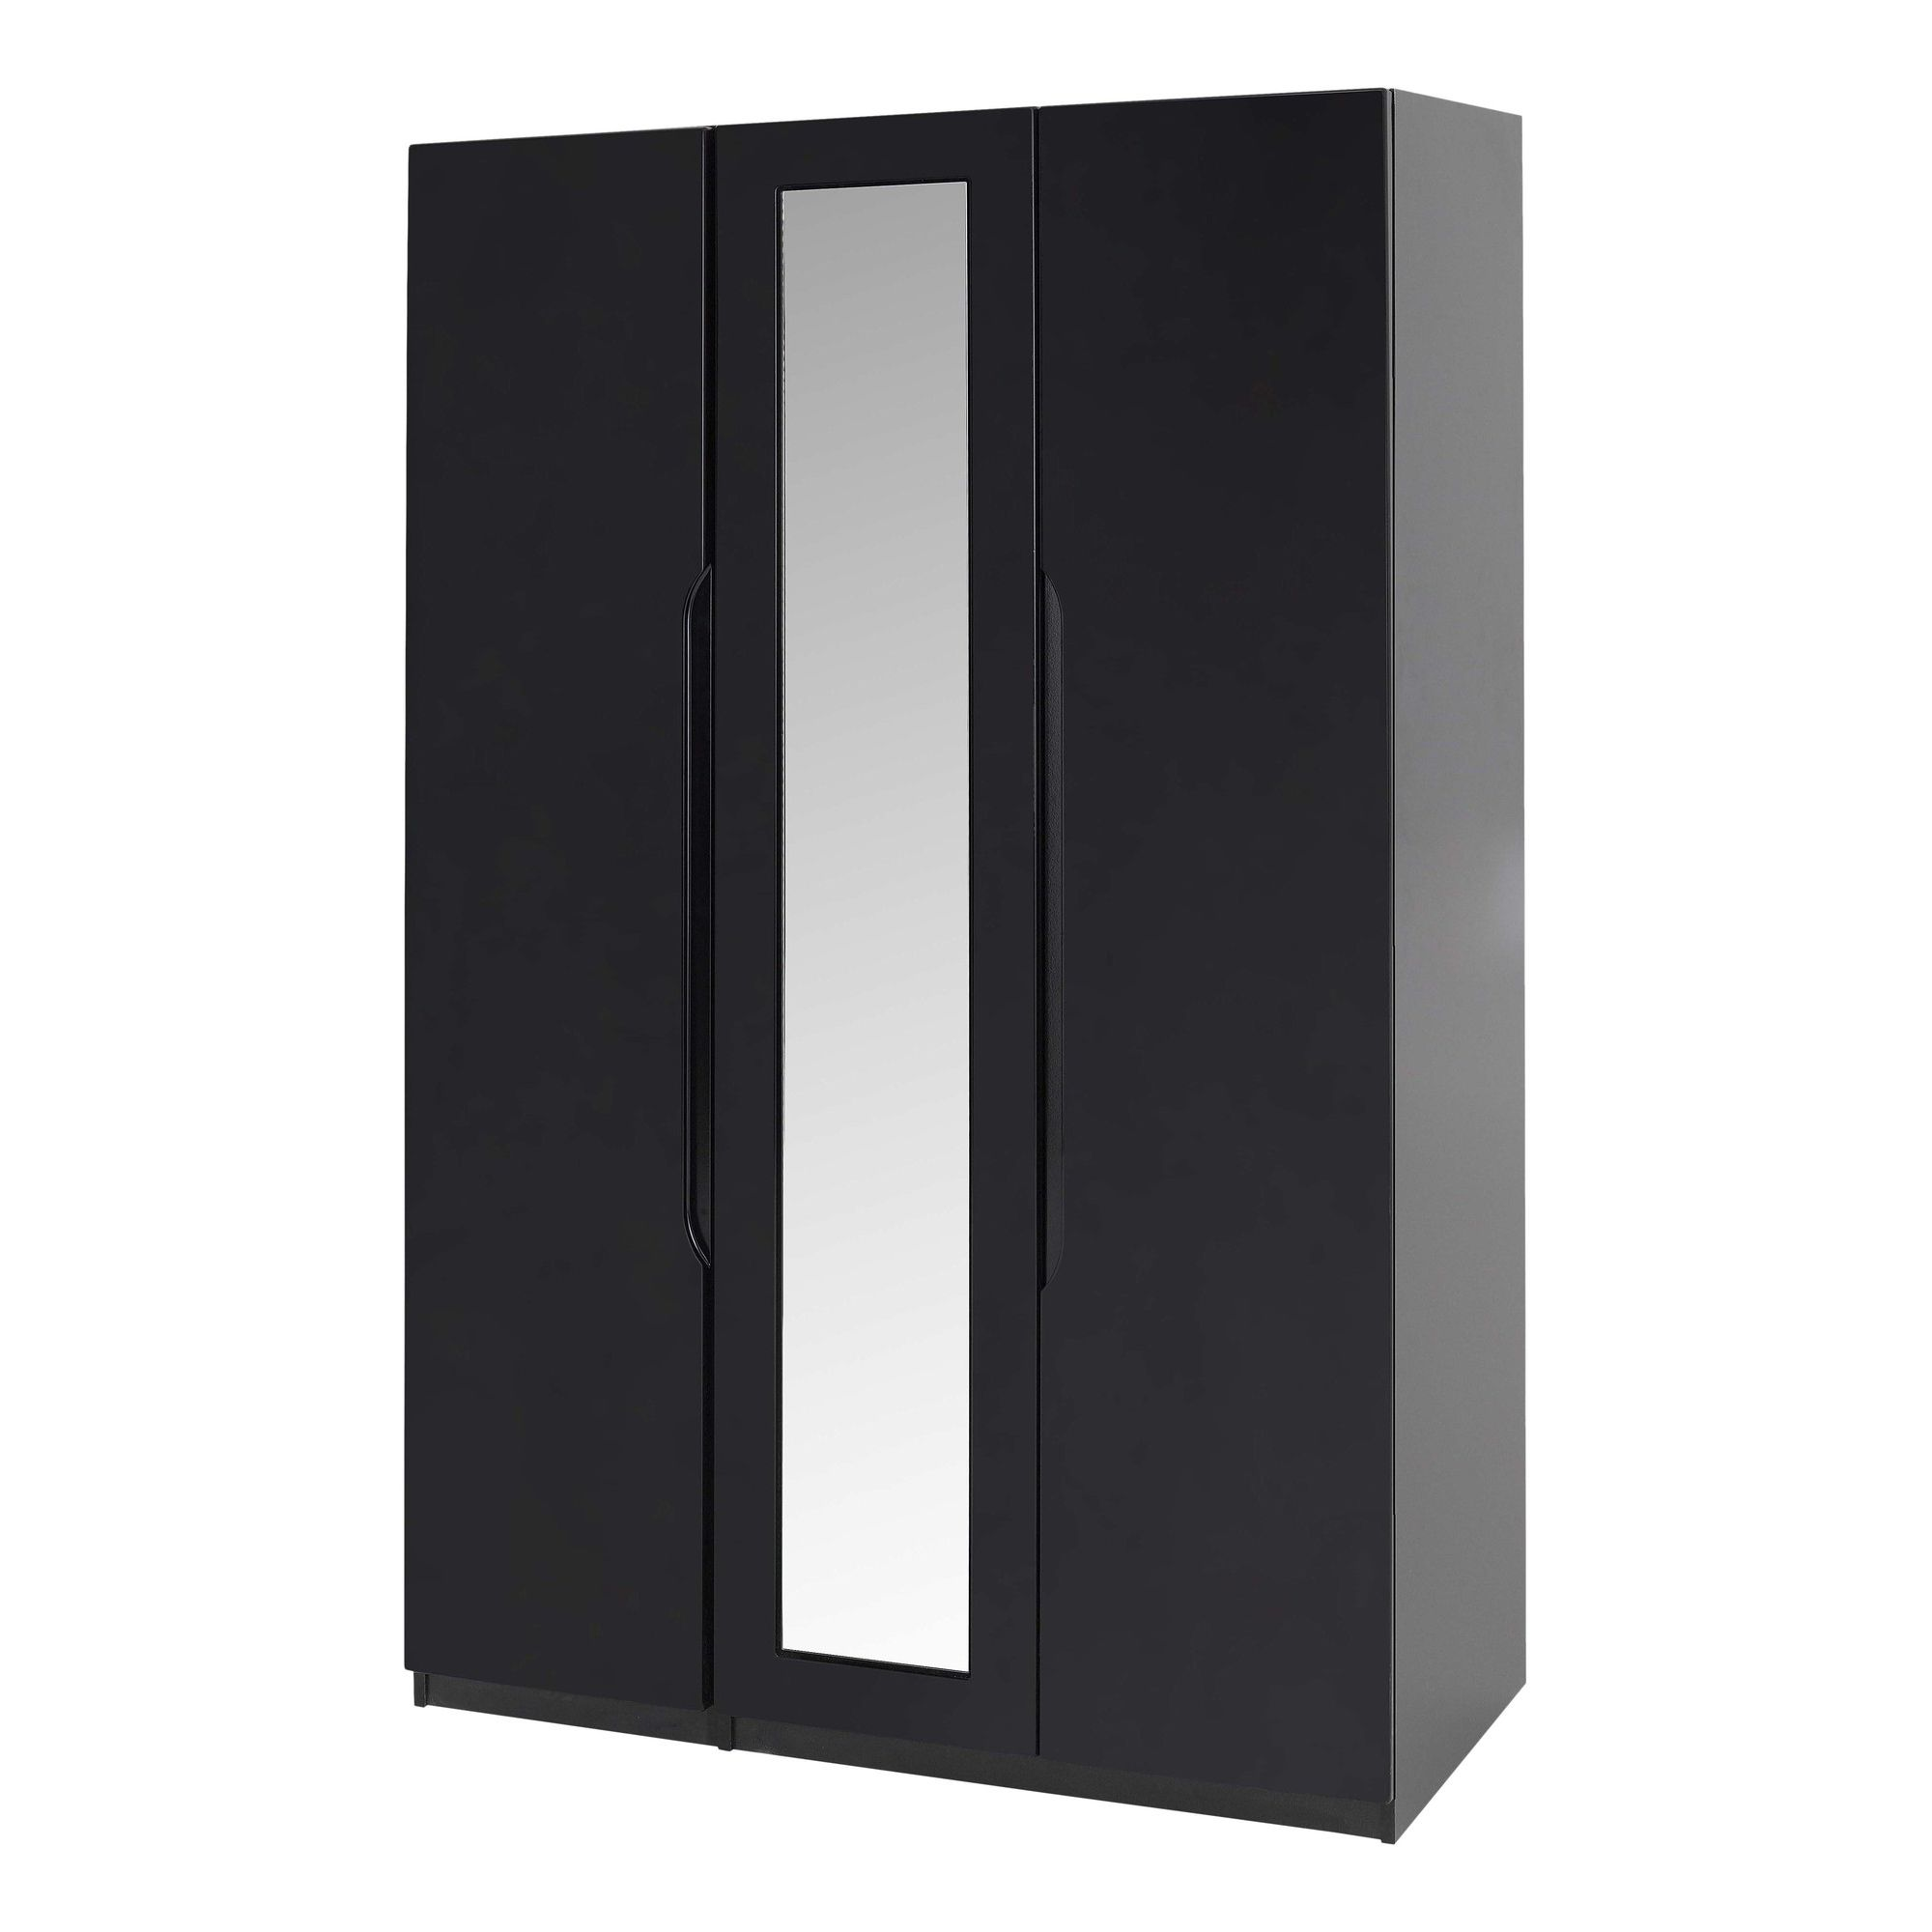 Alto Furniture Visualise Orient Three Door Wardrobe in High Gloss Black at Tesco Direct